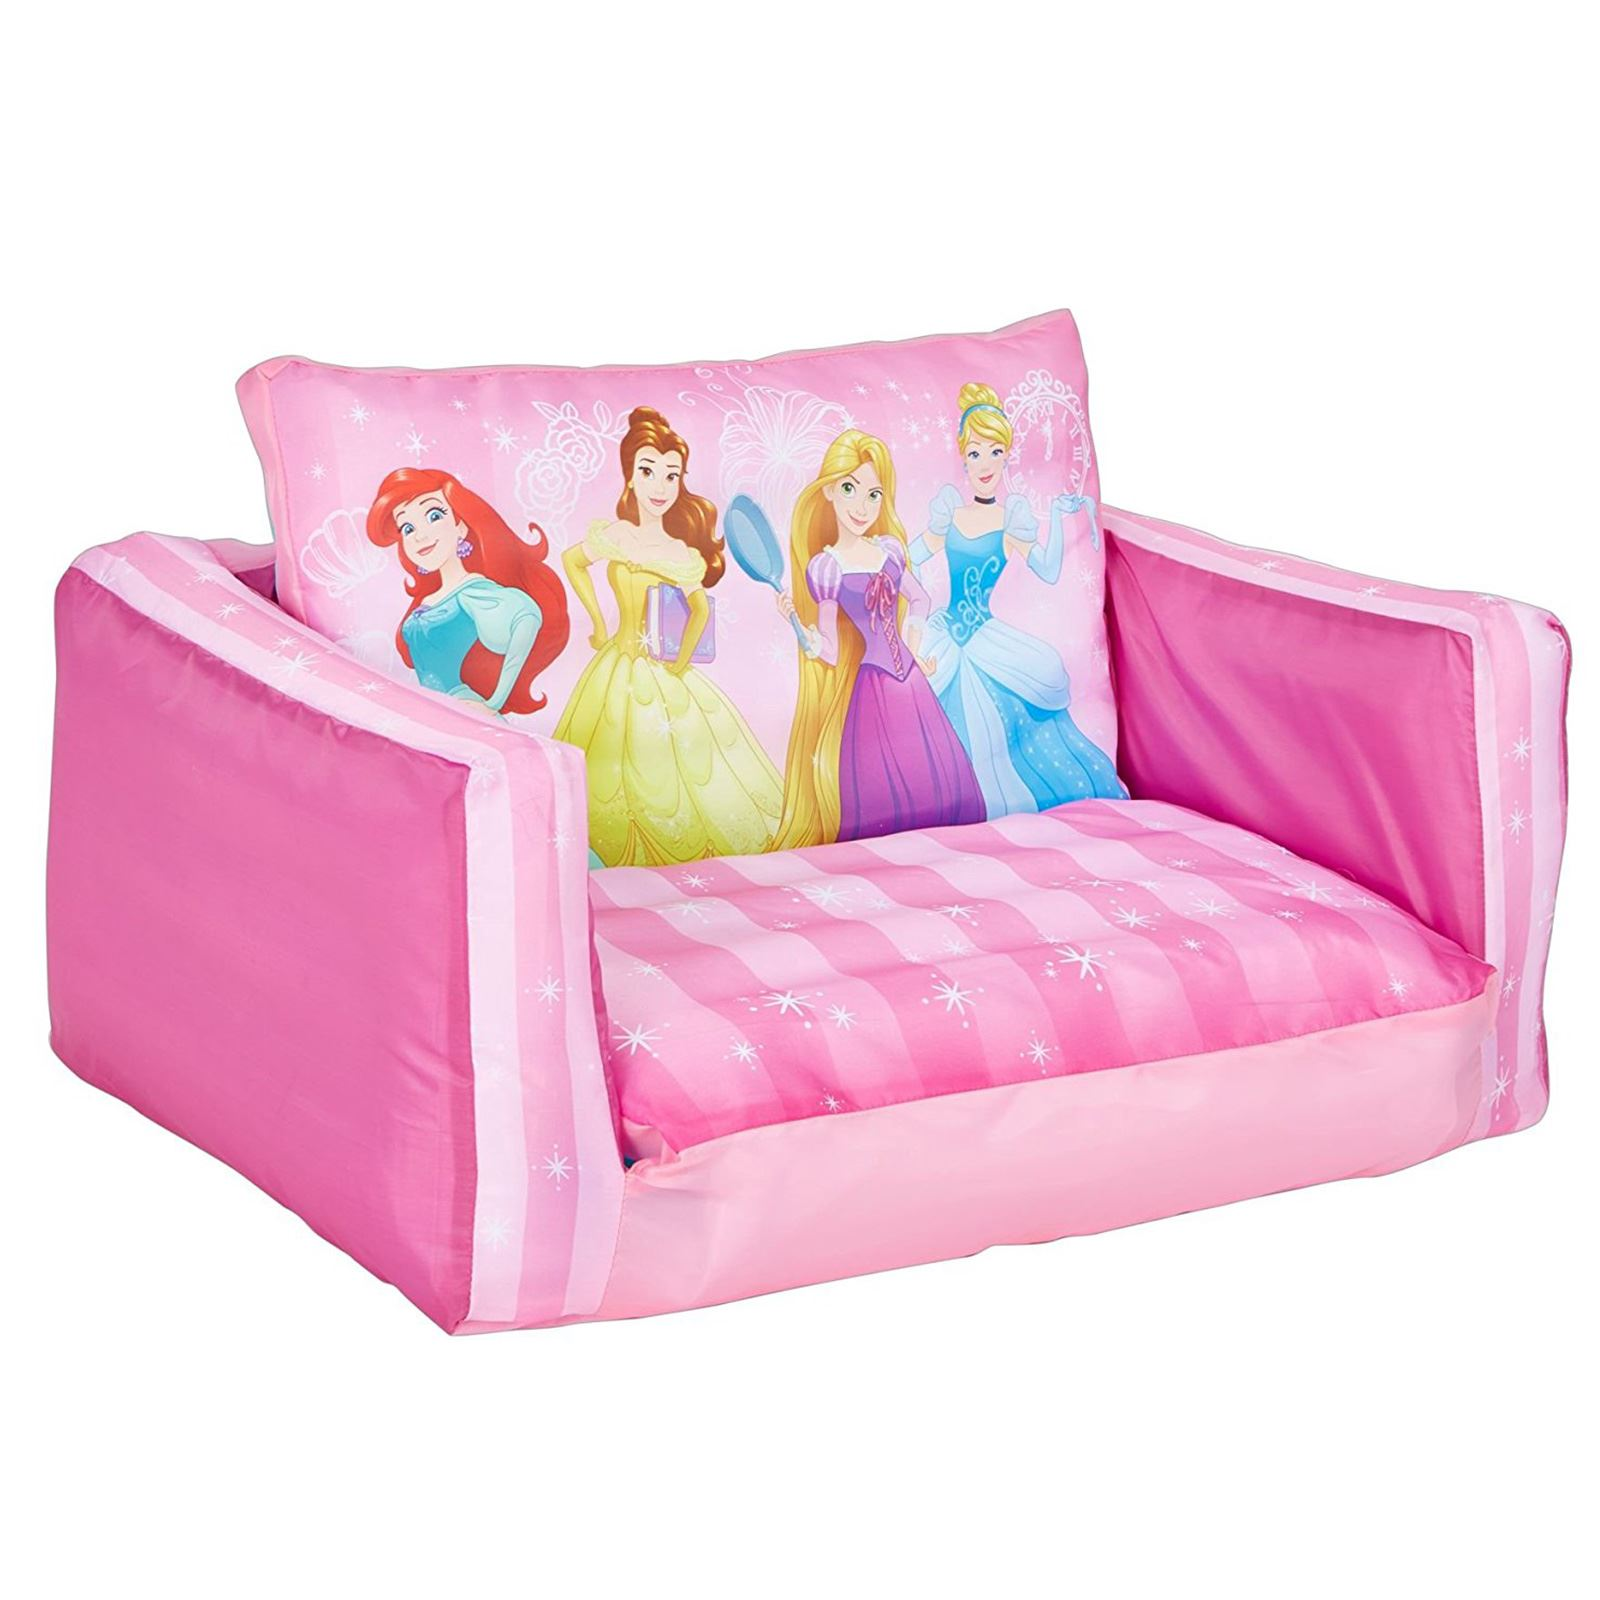 FLIP OUT SOFA RANGE INFLATABLE KIDS ROOM NEW MINIONS FROZEN PAW